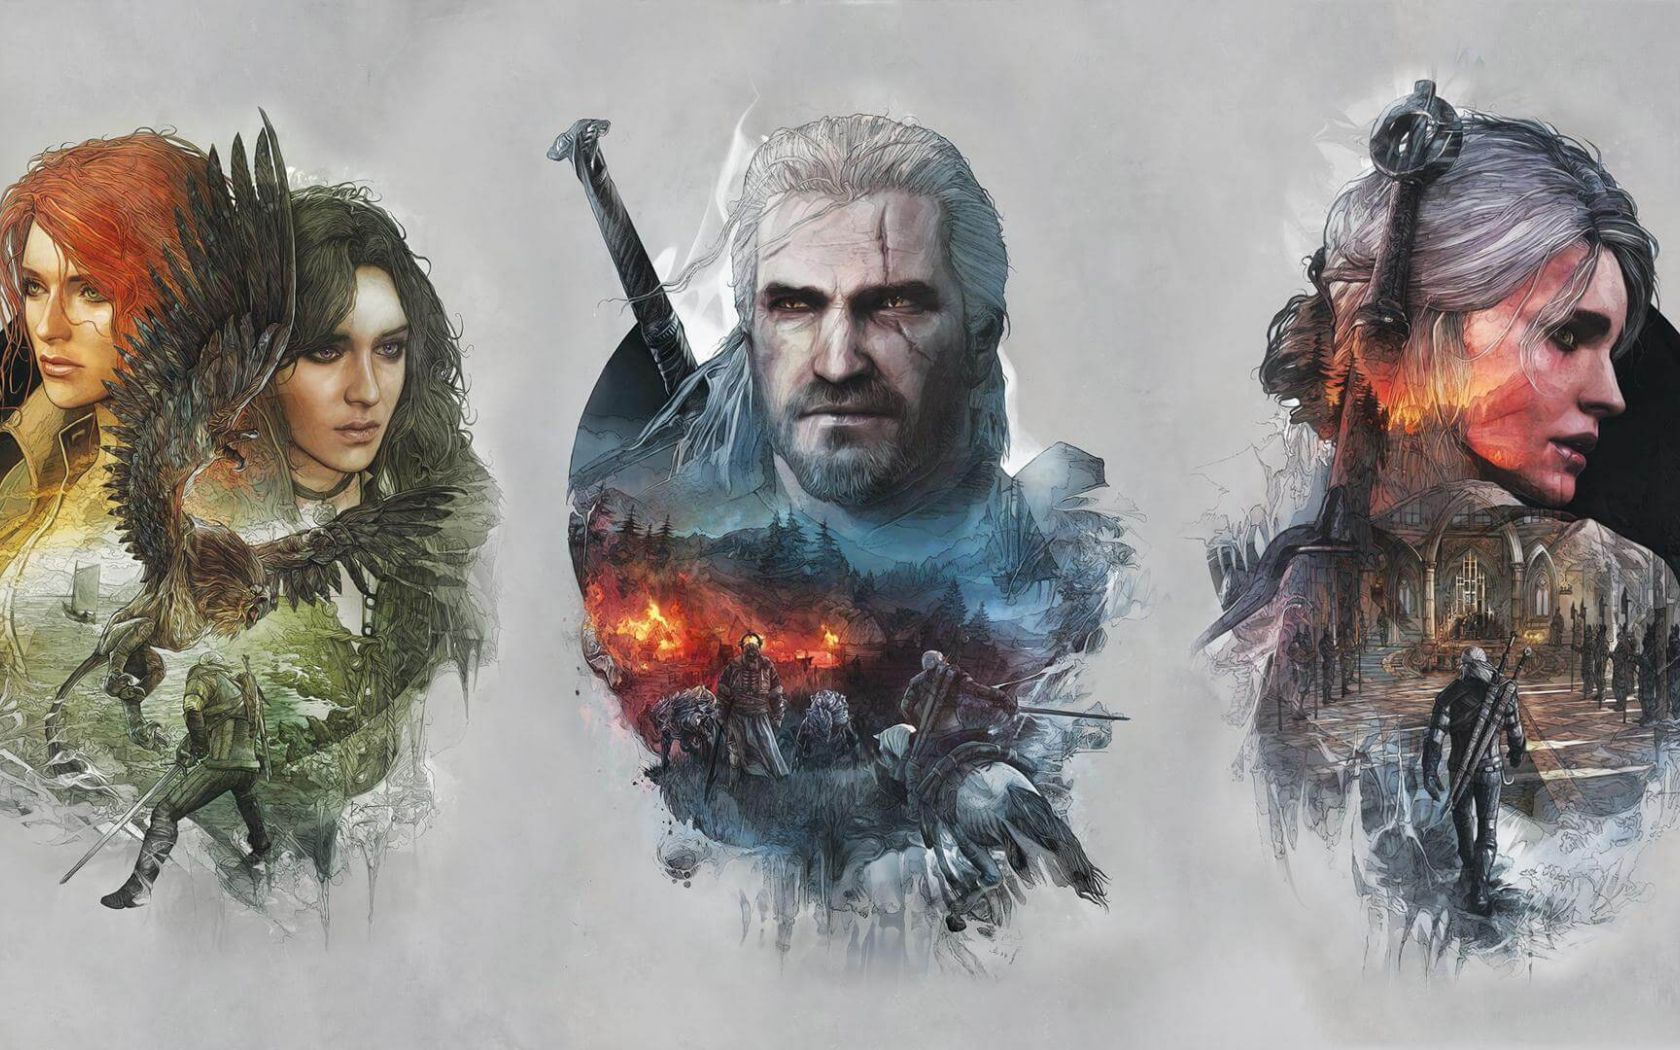 Free Download Witcher 3 Ciri Geralt Yennefer Wallpaper 1920x1080